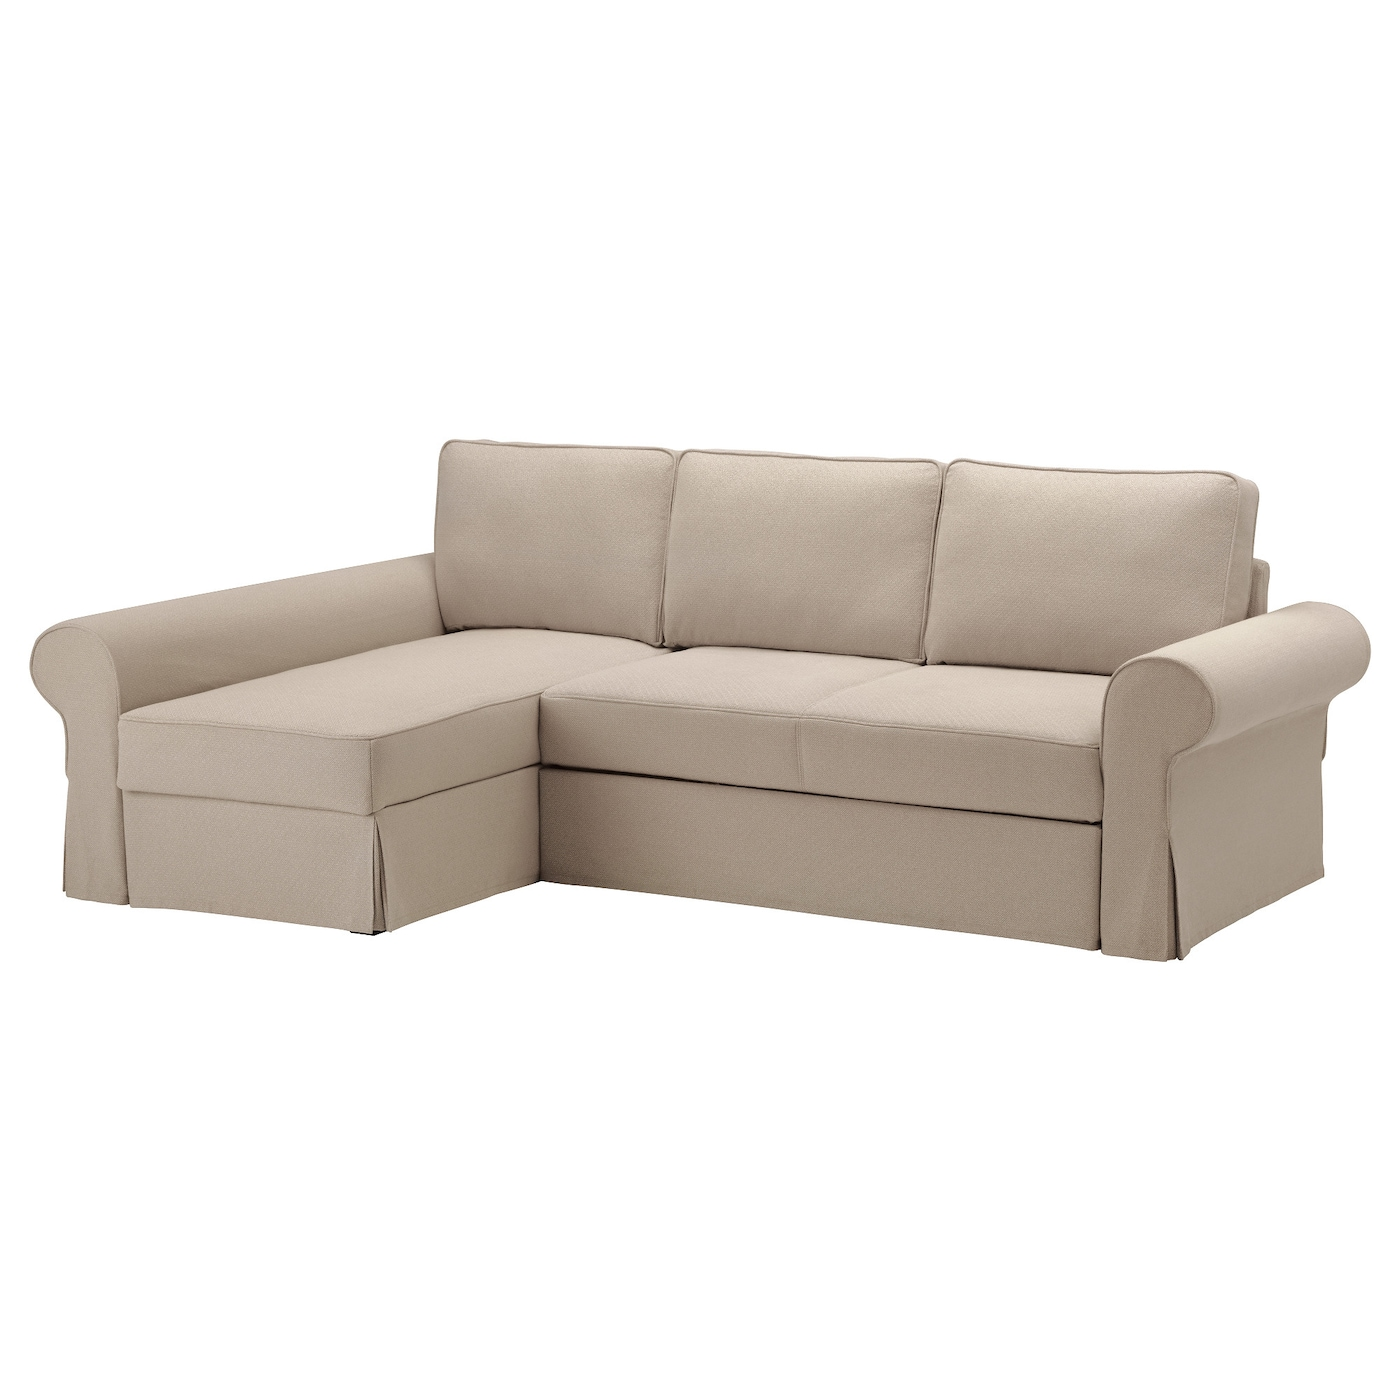 Backabro sofa bed with chaise longue hylte beige ikea - Chaise longue hesperide ...